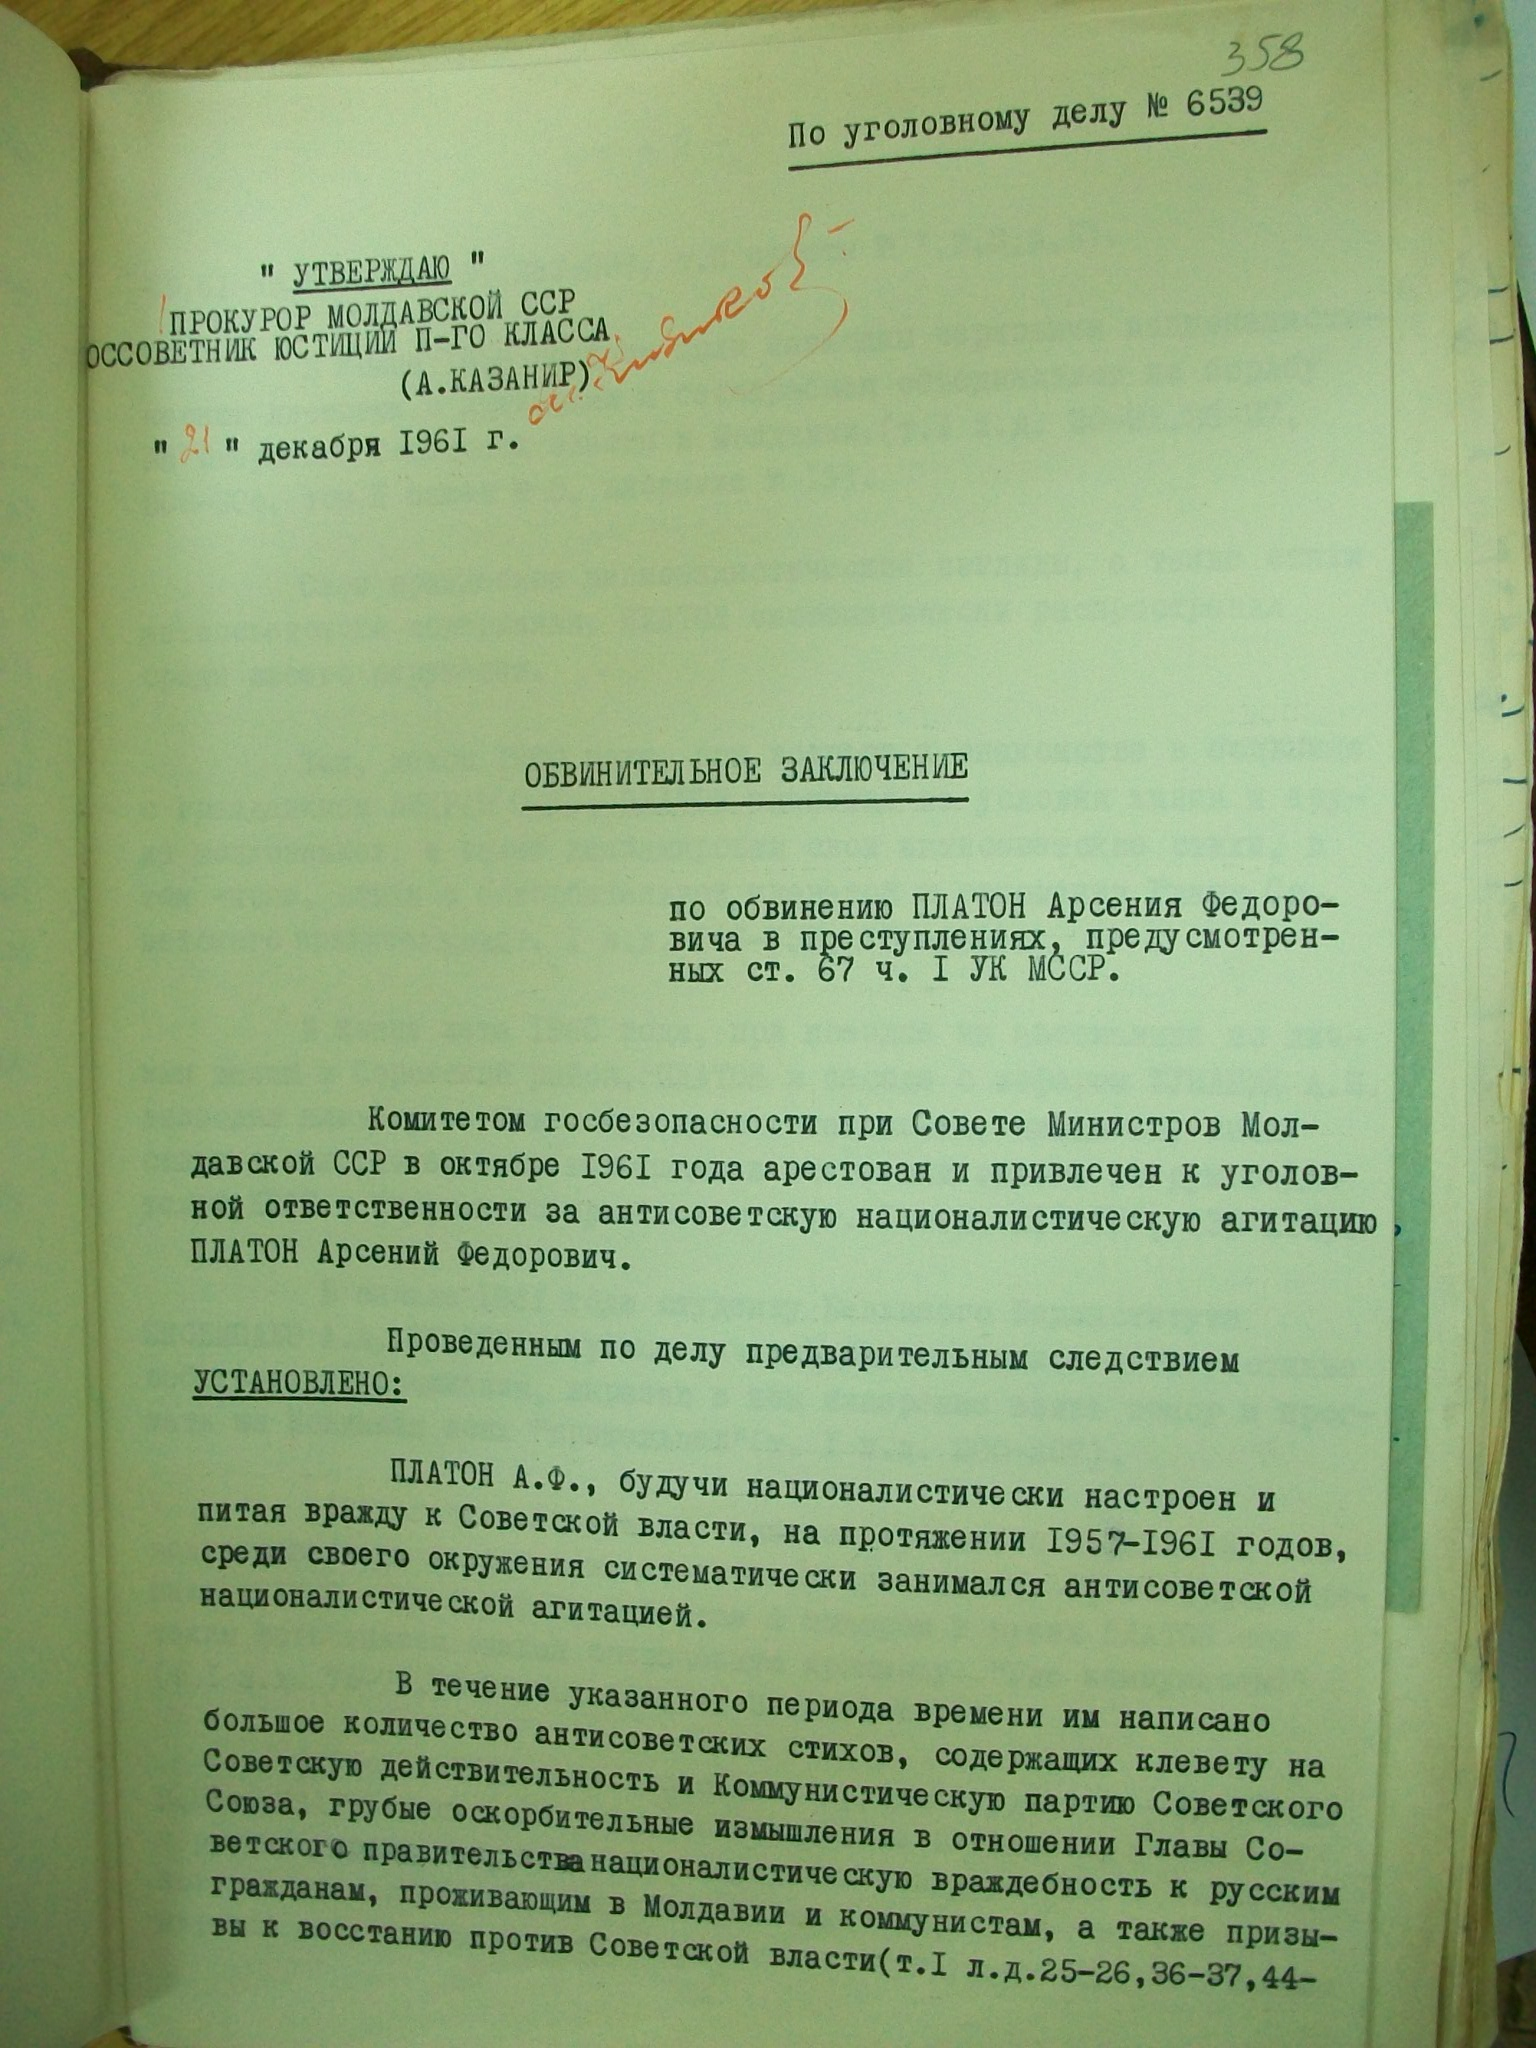 First page of the official accusatory act concerning the case of Arsenie Platon